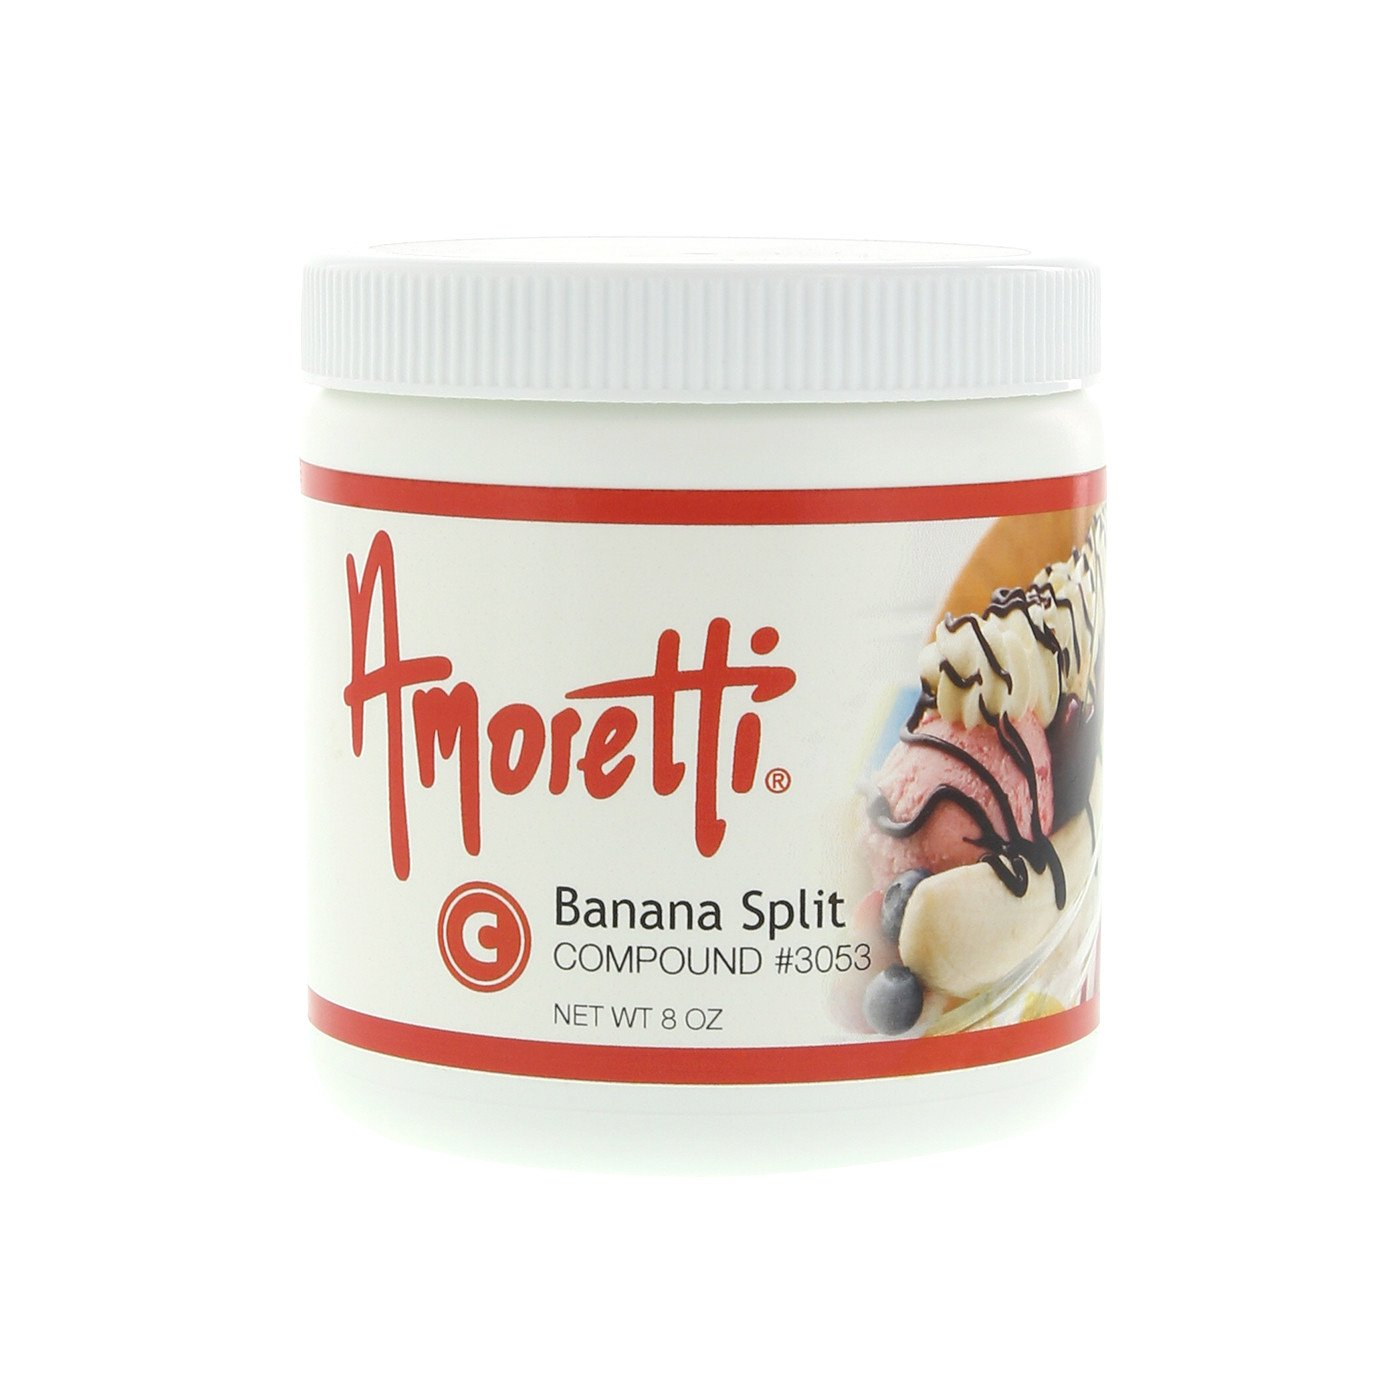 Amoretti Banana Split Compound